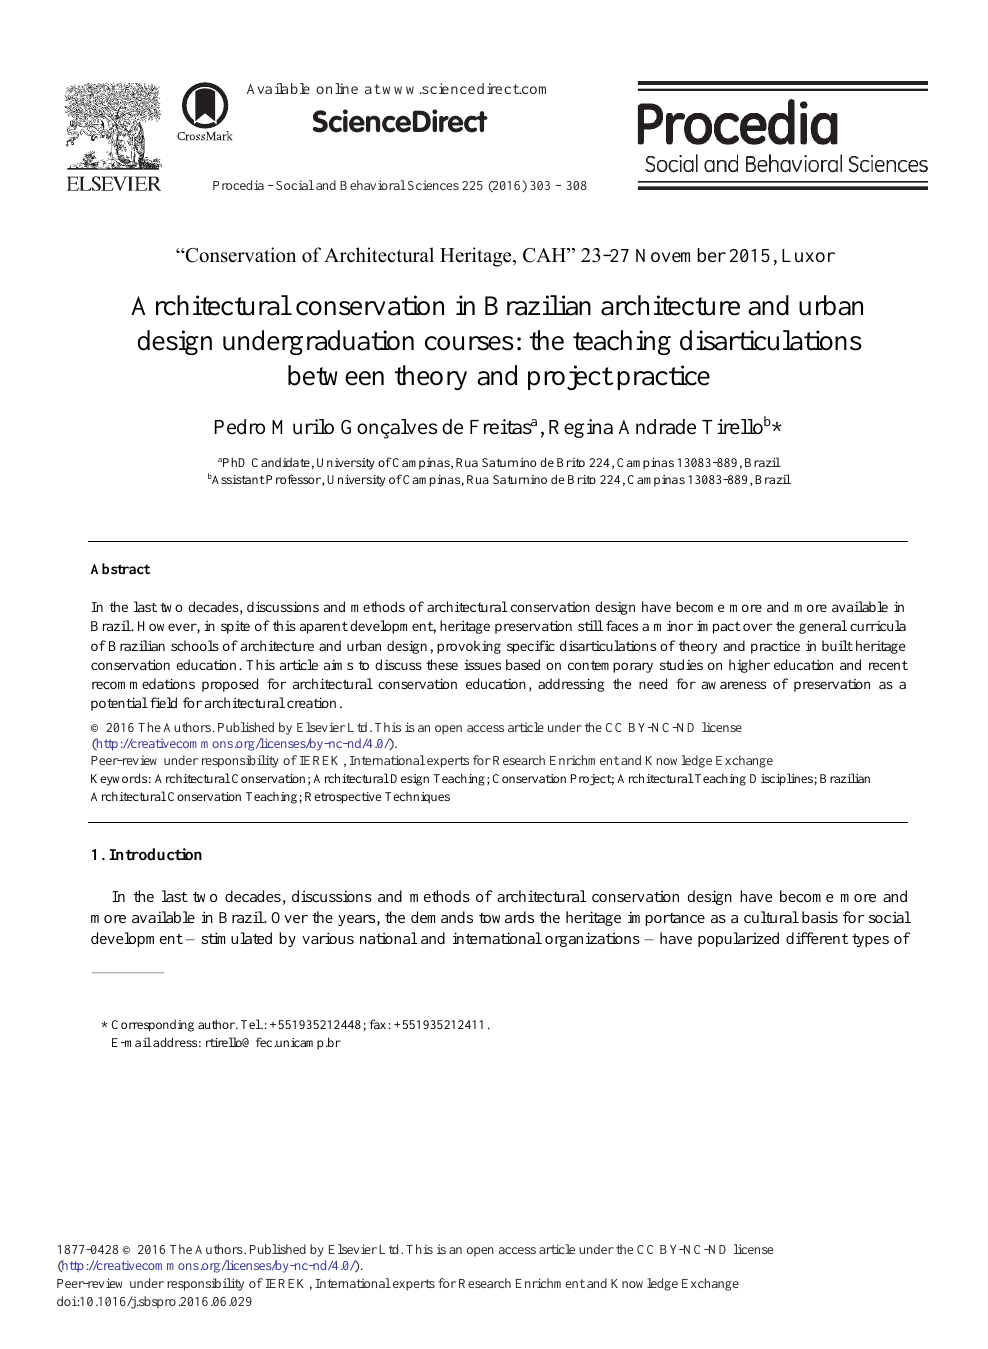 Architectural Conservation In Brazilian Architecture And Urban Design Undergraduation Courses The Teaching Disarticulations Between Theory And Project Practice Topic Of Research Paper In Agriculture Forestry And Fisheries Download Scholarly